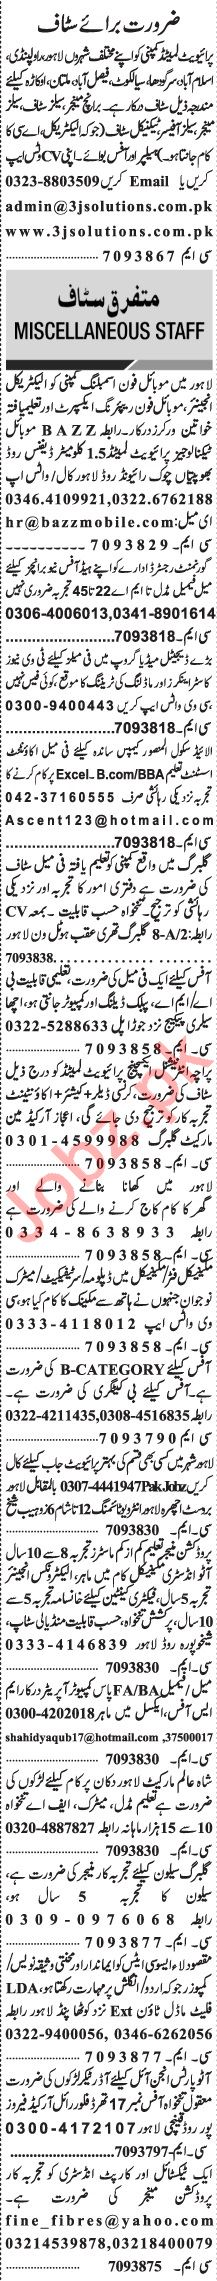 Jang Sunday Classified Ads 24 Jan 2021 for General Staff